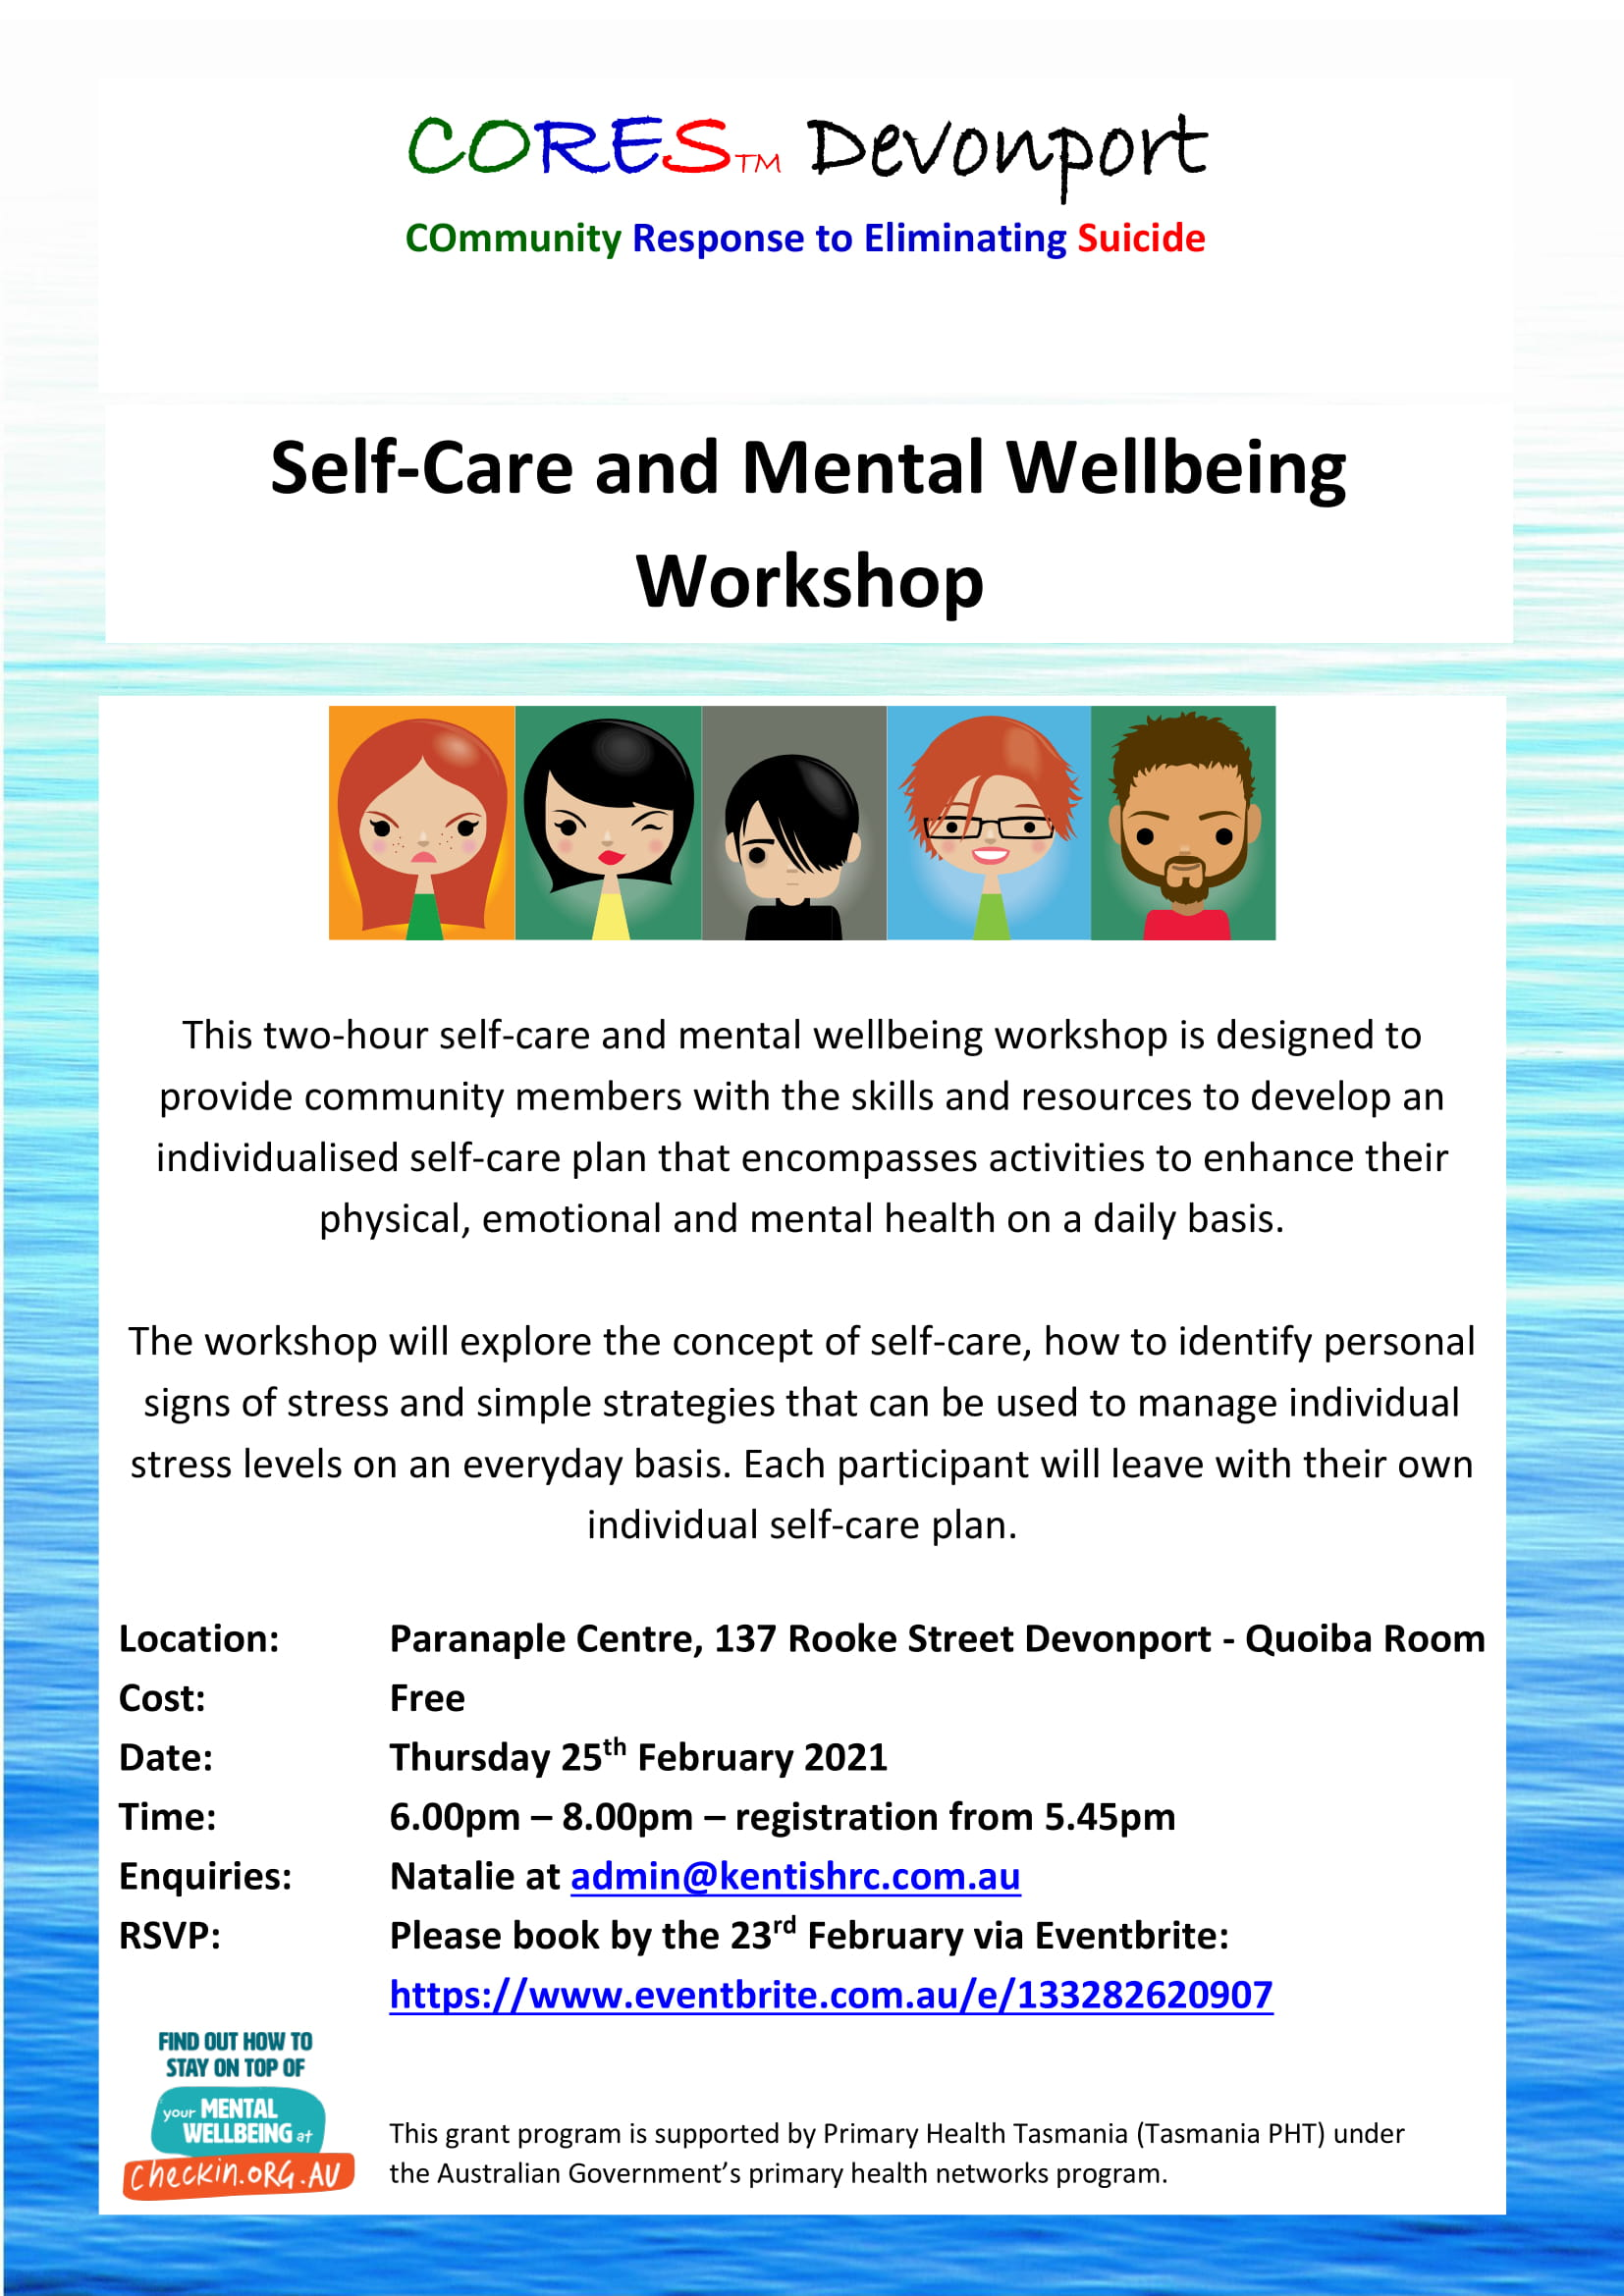 CORES Self-Care and Mental Wellbeing Devonport February 2021 fb